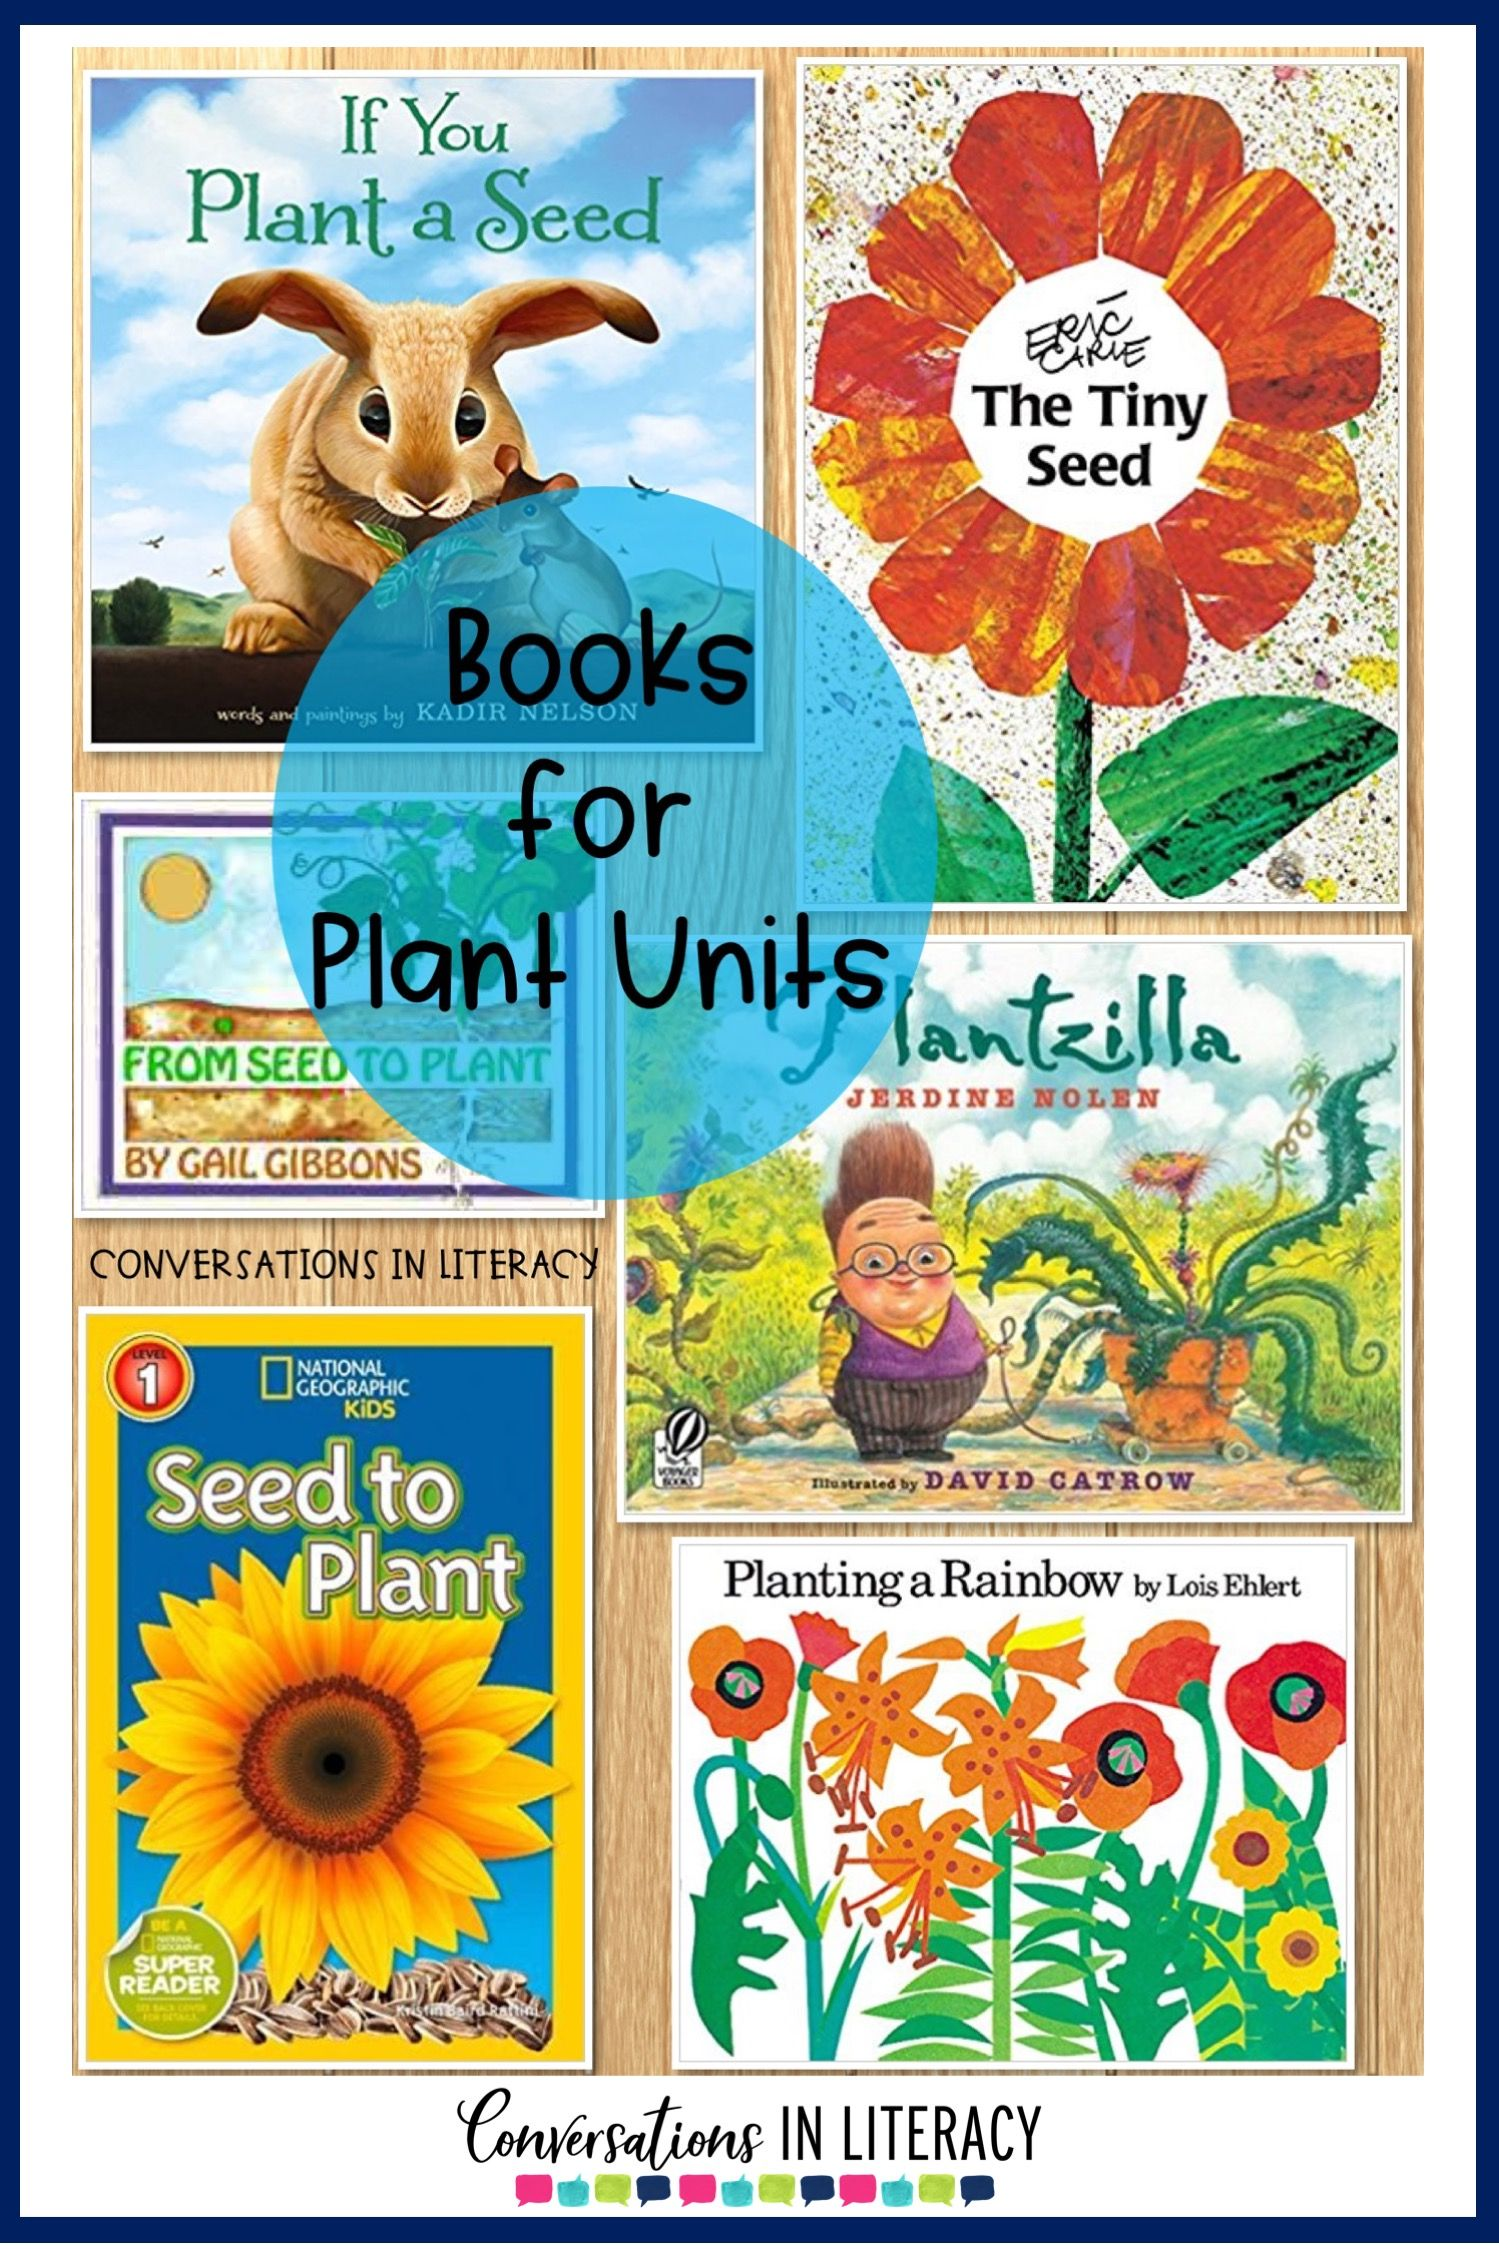 Plant Life Cycle books, Activities, projects and a FREE printable for your elementary classroom! Science writing activities and fun learning ideas for students. #flipbook #plants #scienceforkids #writingactivities #freeprintables #conversationsinliteracy #kindergarten #firstgrade #secondgrade #thirdgrade kindergarten, first grade, second grade, third grade #plantlife